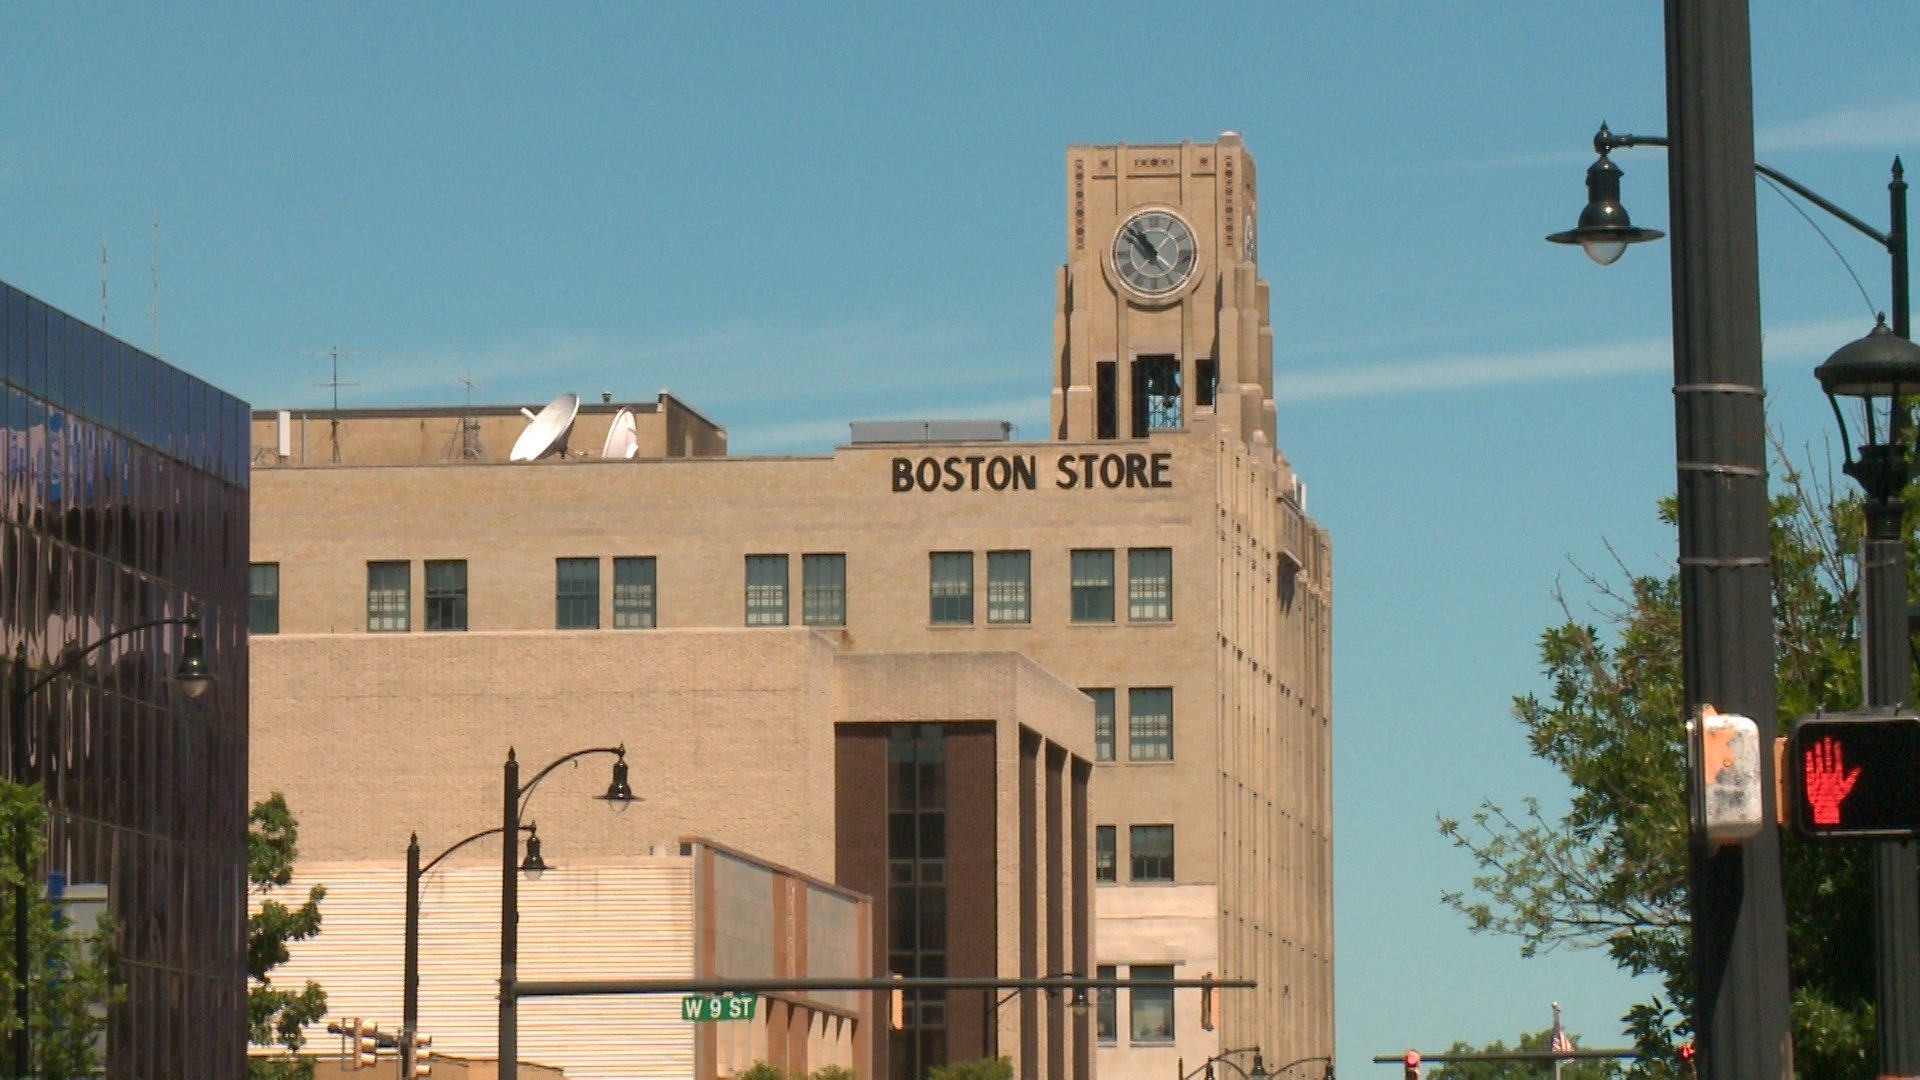 The Boston Store Place Apartments is a unit Low Income Housing Tax Credit (LIHTC)historic project in downtown Erie, Pennsylvania. The property was originally constructed in as The Boston Store, the preeminent department store in Erie.